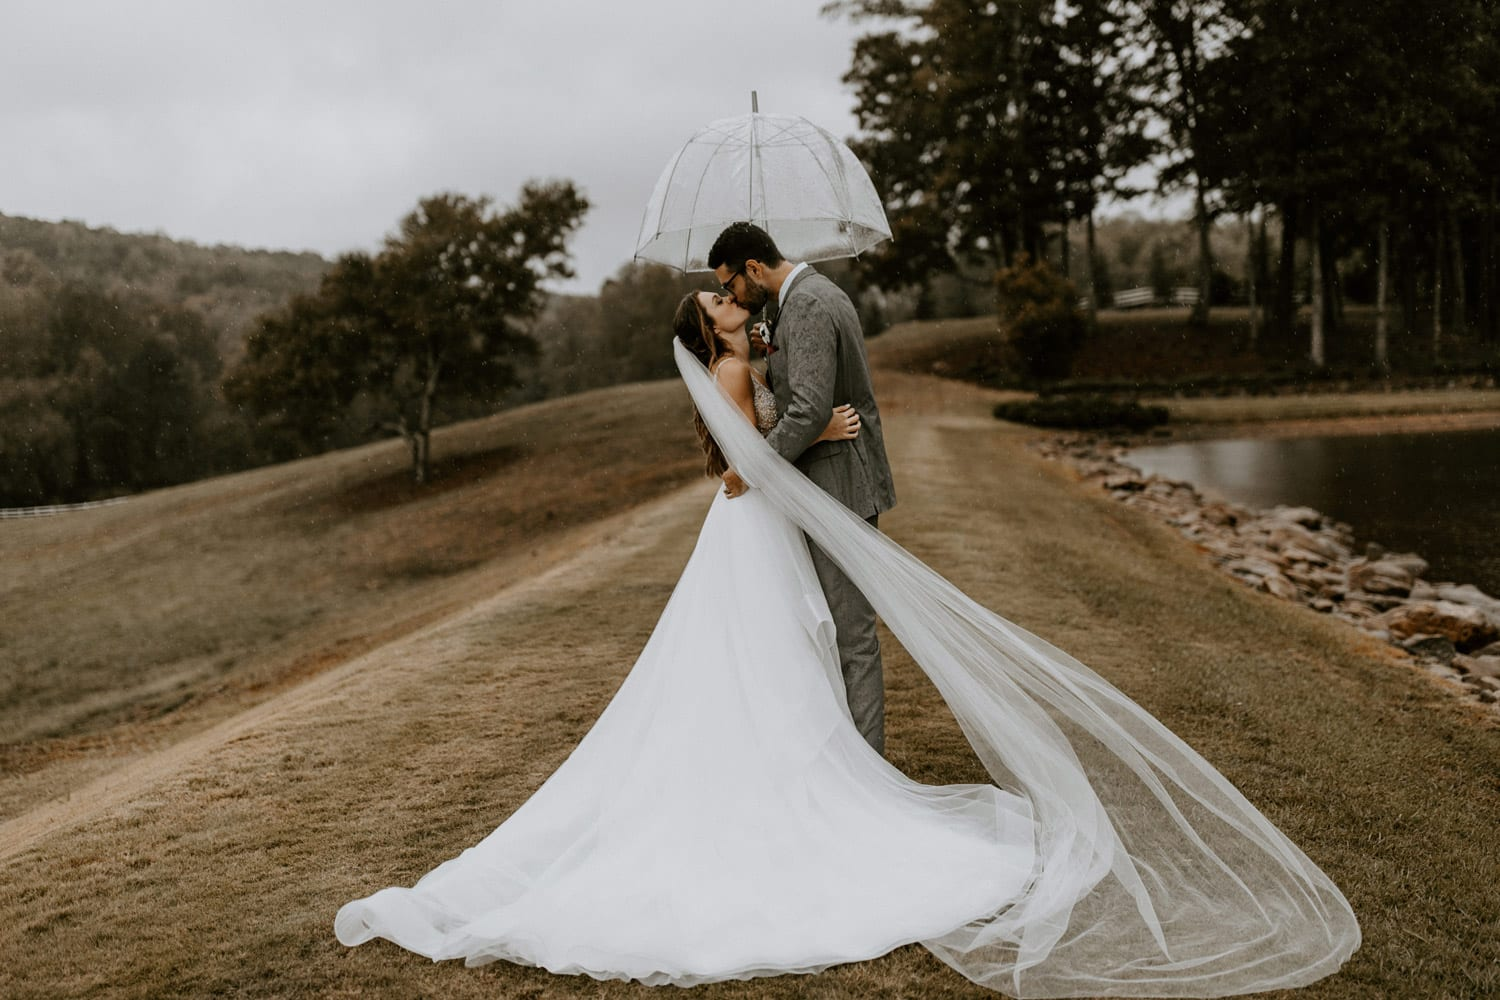 Bride and groom kissing in the rain outside with umbrella